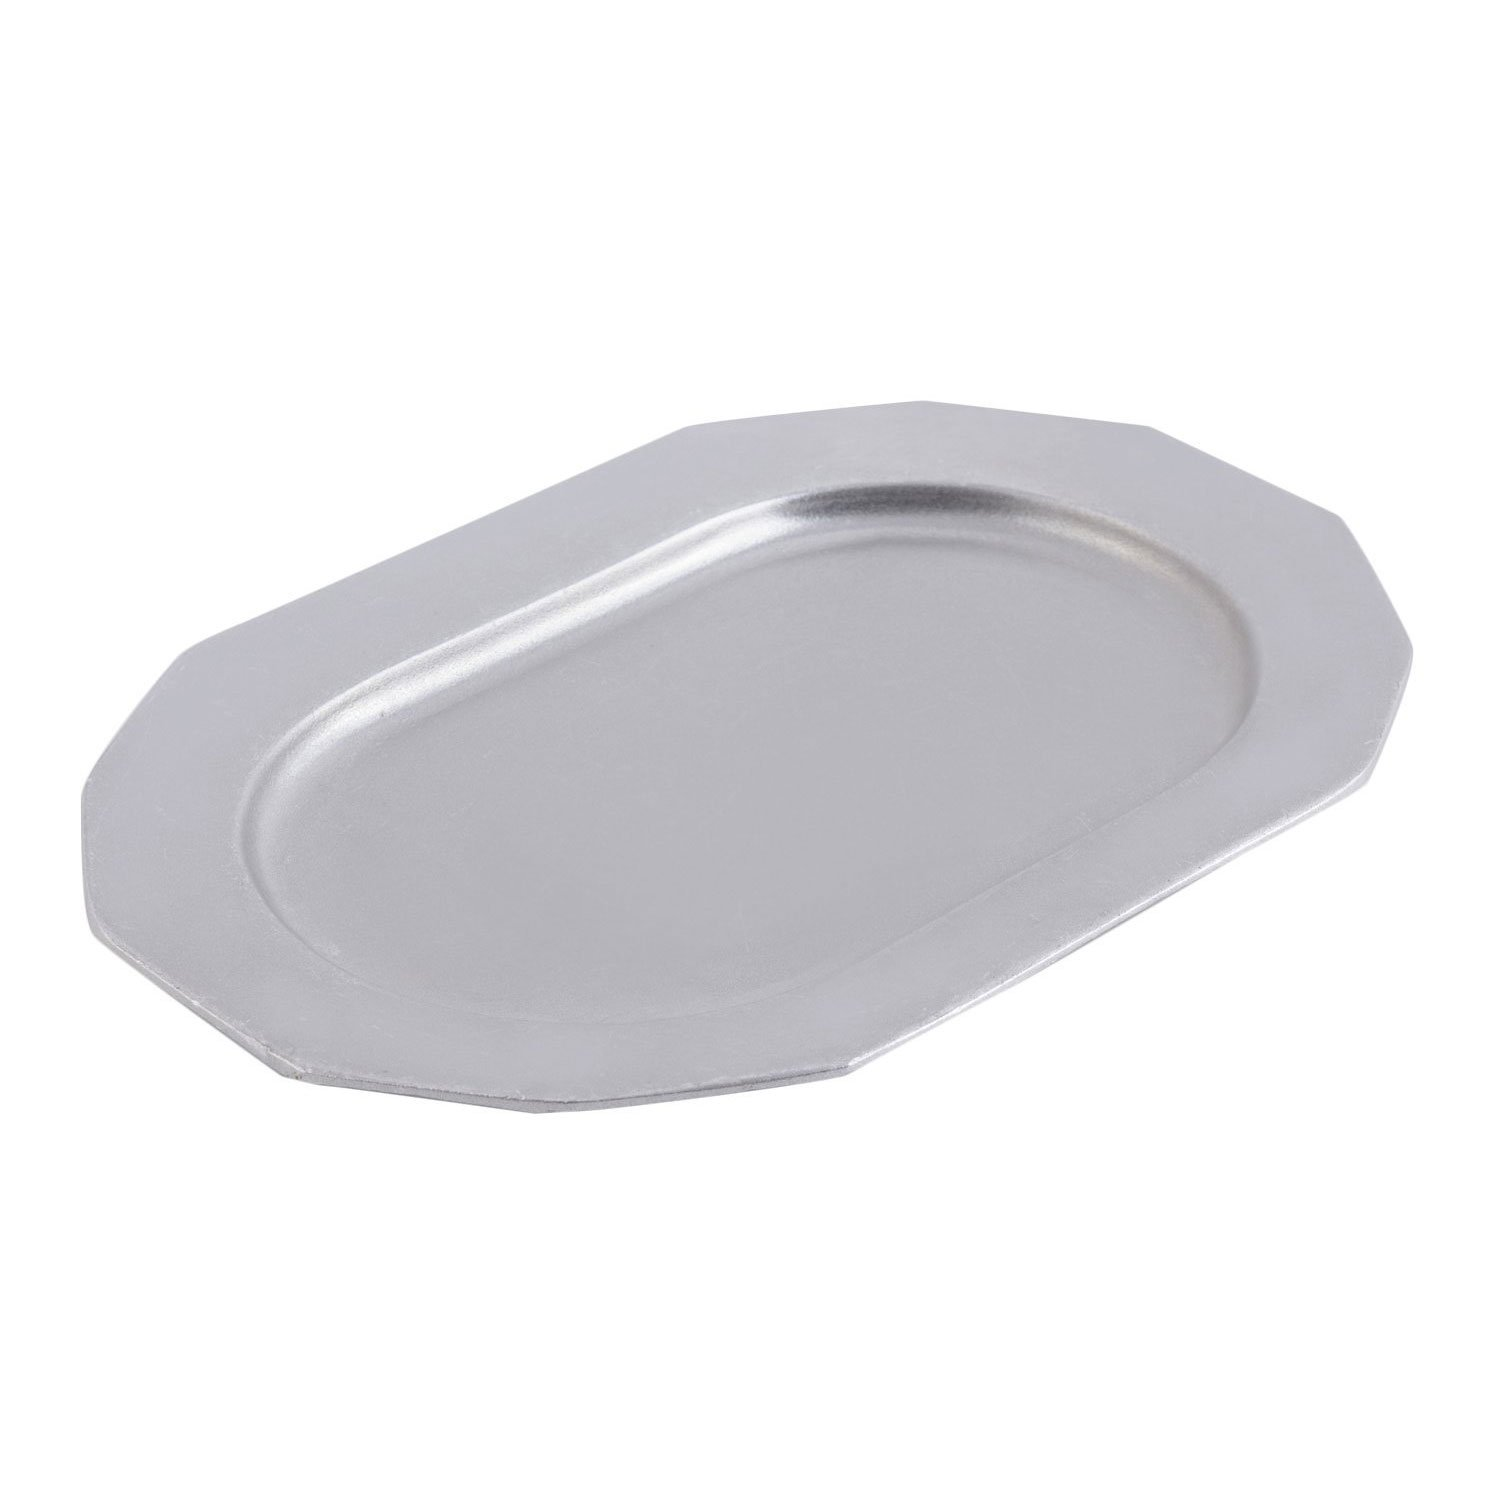 9 7/8 x 14 1/4 inch Prism Tray Pewter Glo